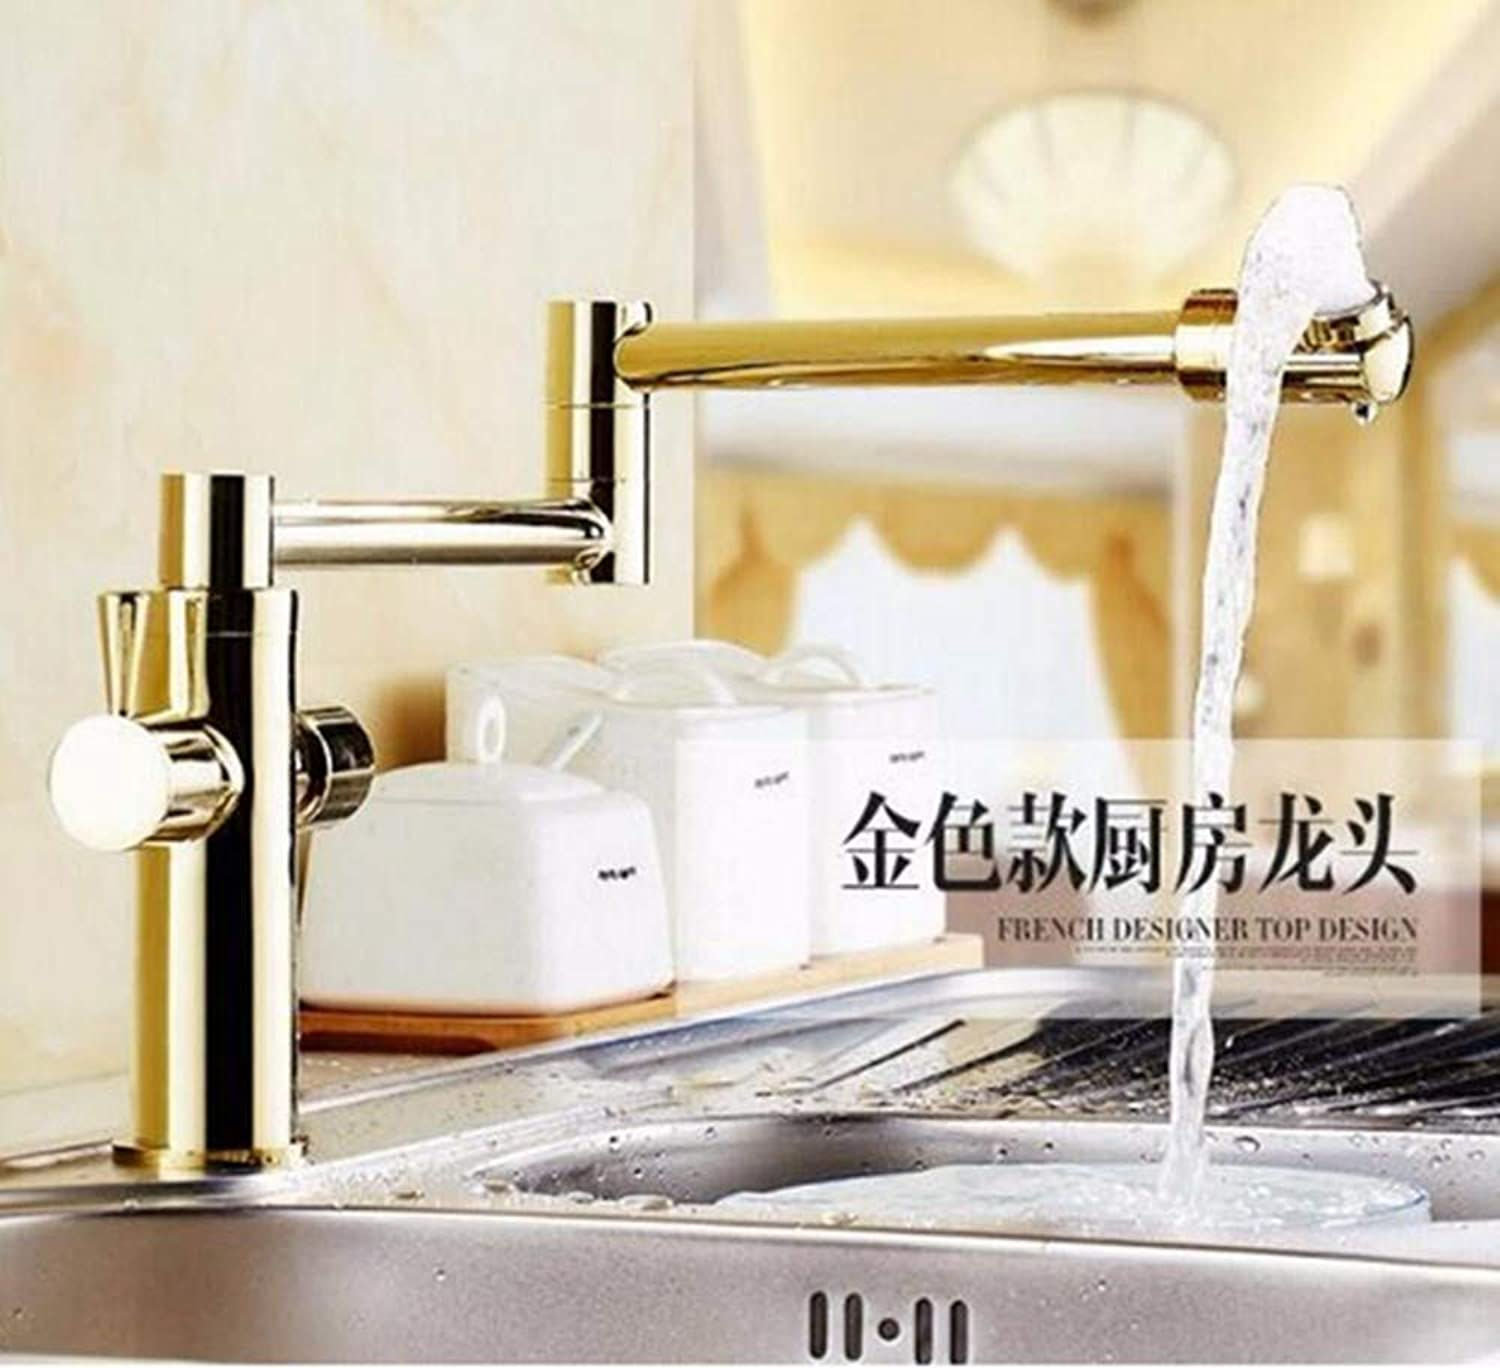 FZHLR Fashion Europe Style Total Brass Antique Brushed Kitchen Faucet Swivel Kitchen Mixer Tap,Sink Tap,Foldable Kitchen Tap 4 color,golden